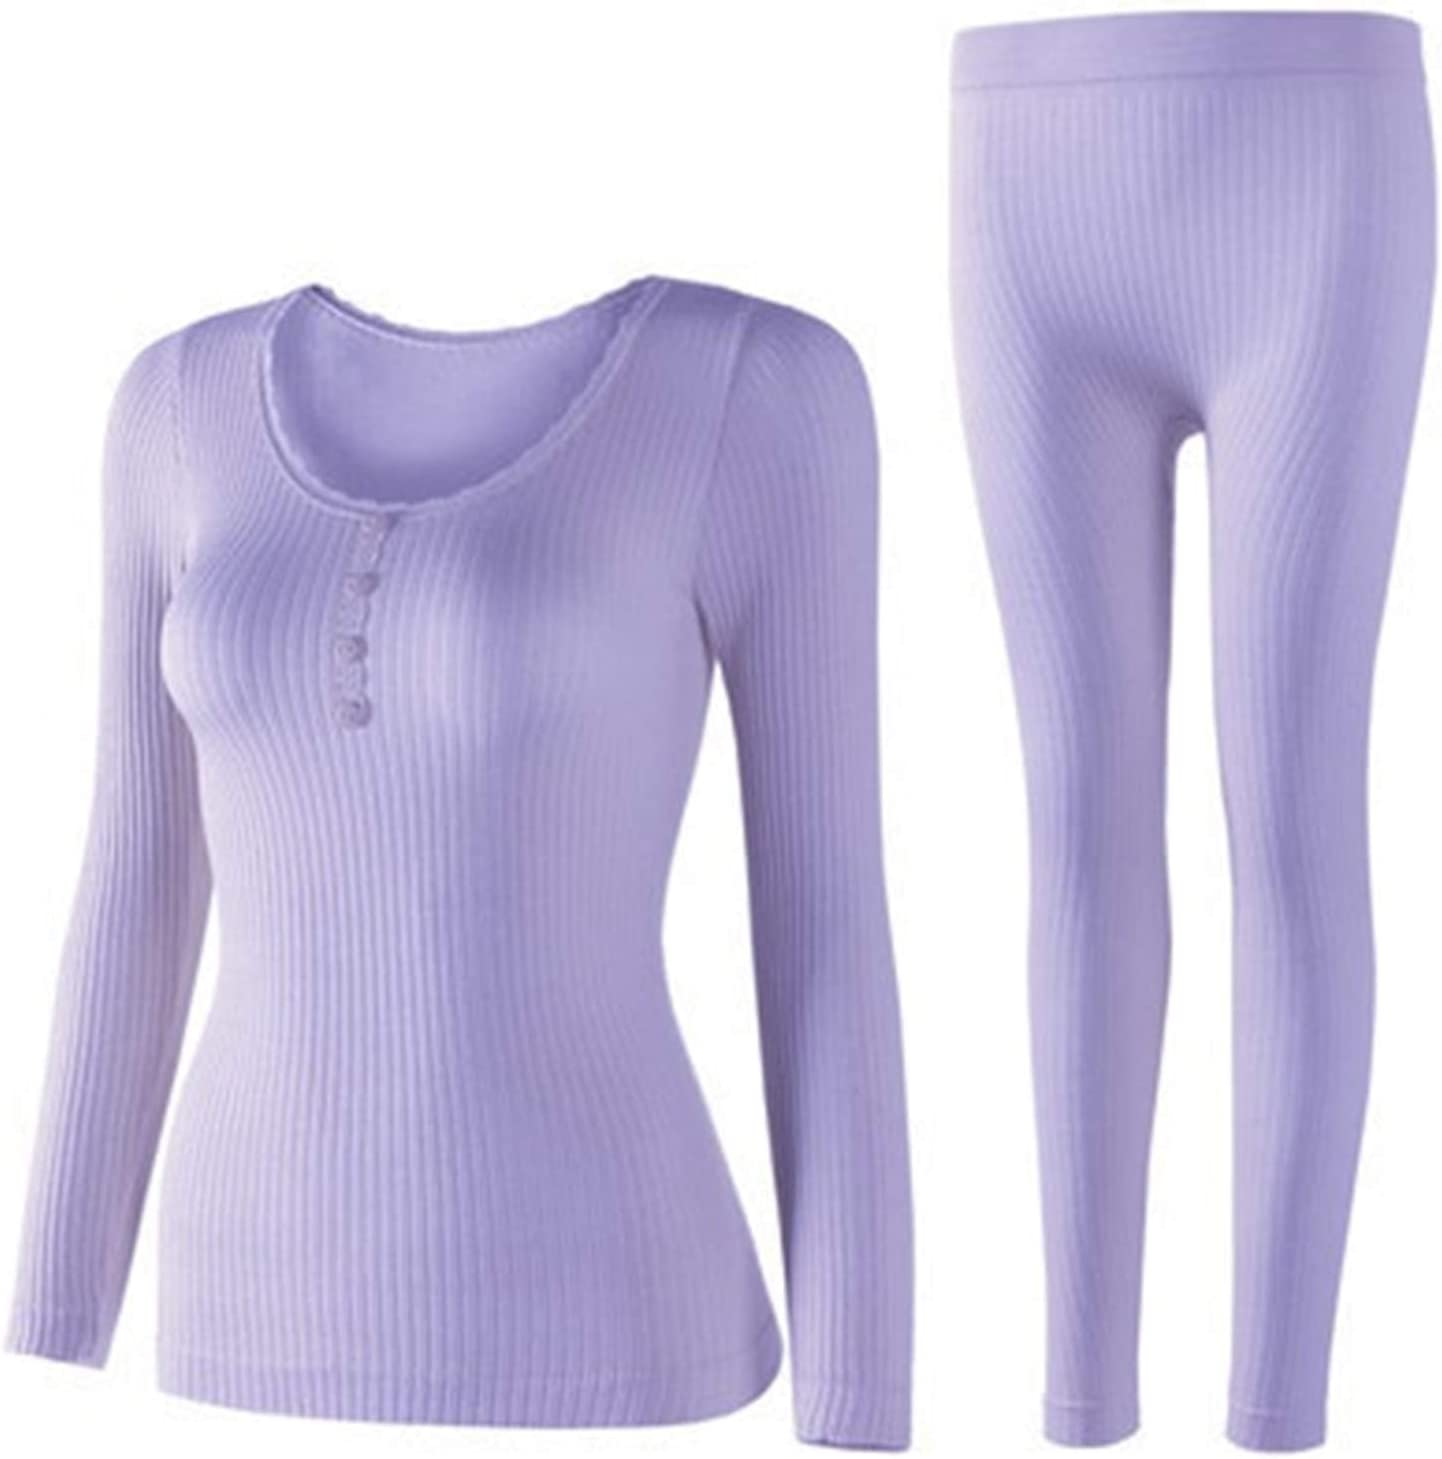 DZHT O-Neck Women Cotton Thermal Underwear Clothing Cotton Thermo for Female Thermal Sets Warm Suit Solid Color Intimates (Color : Light Purple, Size : (40 65) kg)